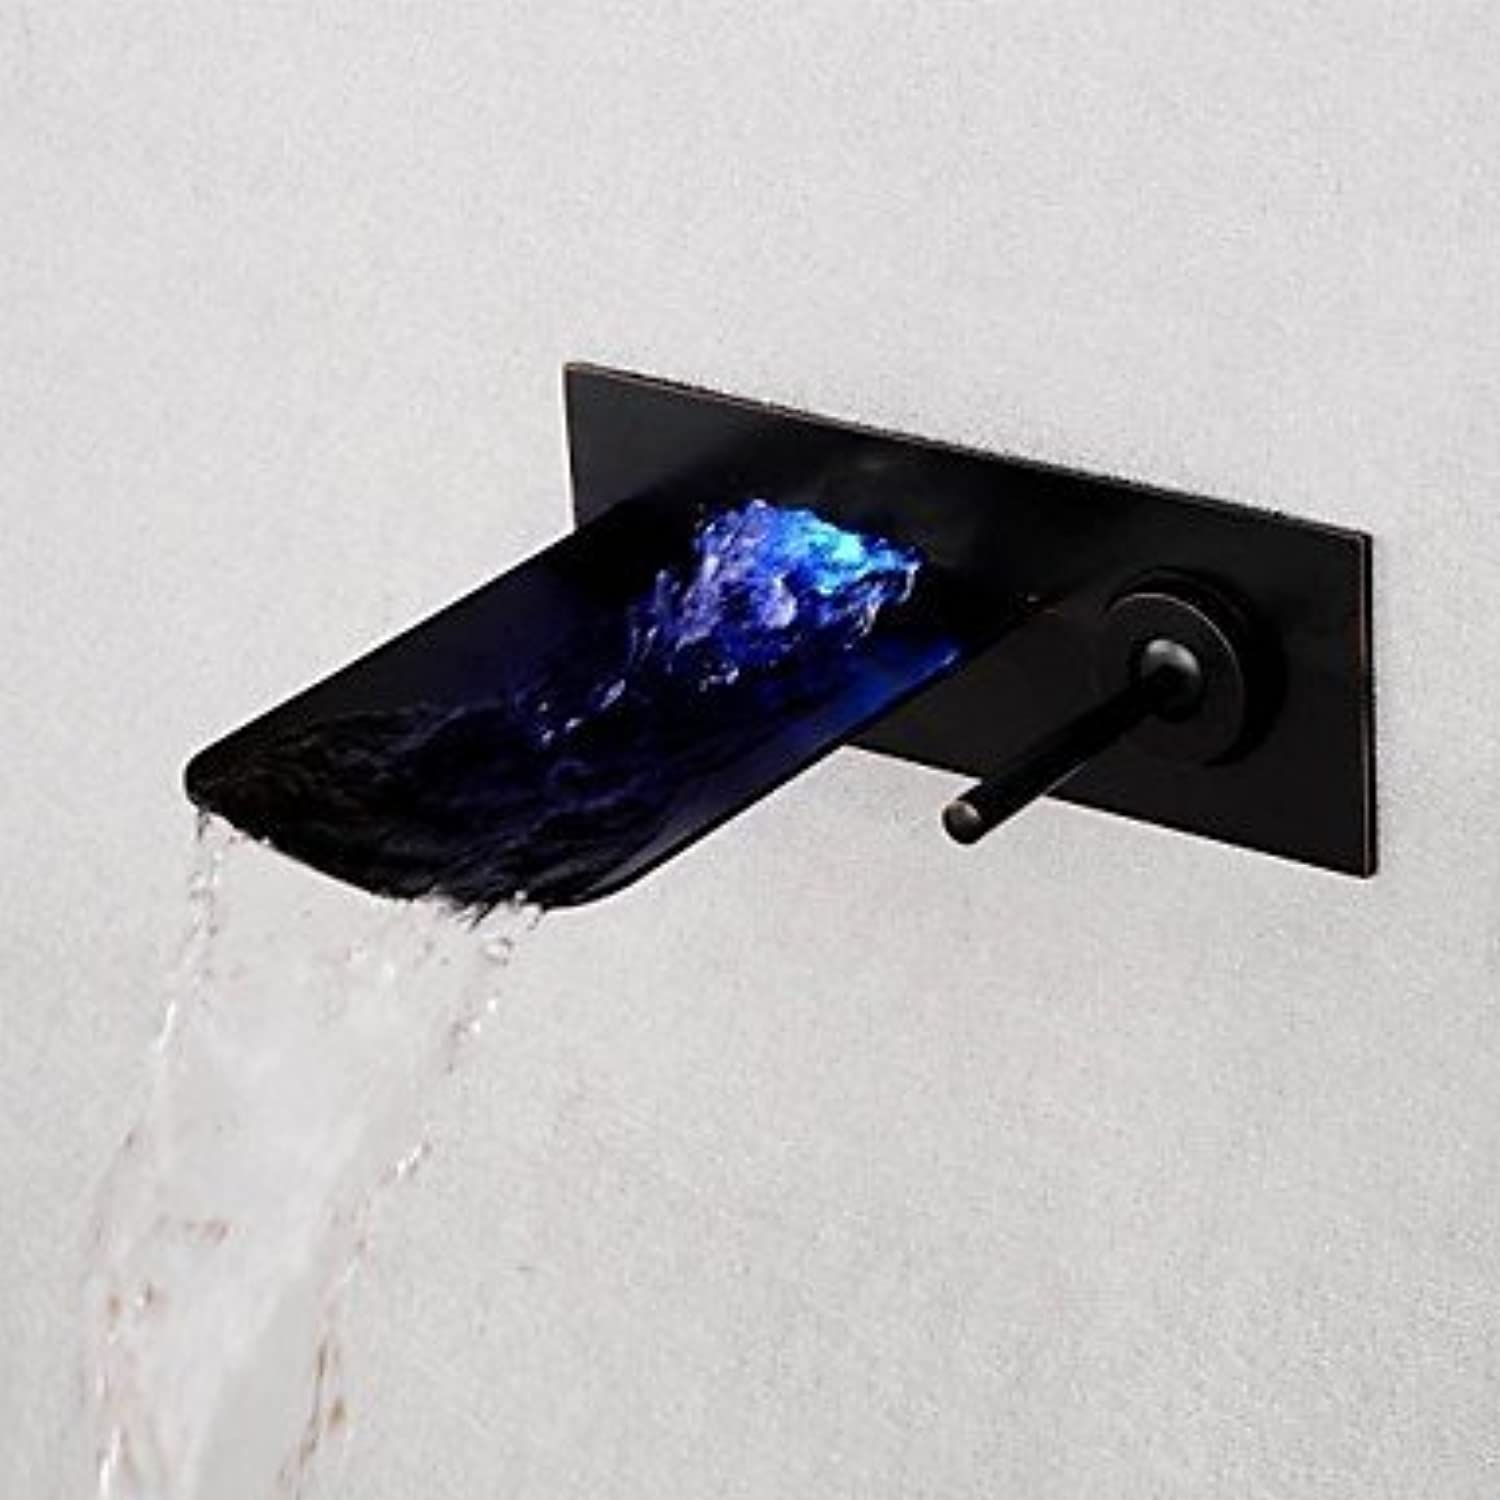 XINXI HOME Basin Tap Brushed LED bluee Green Red Light Waterfall Wall Mounted Bathroom Basin Faucet - Black Bathroom Faucet Basin Mixer Tap